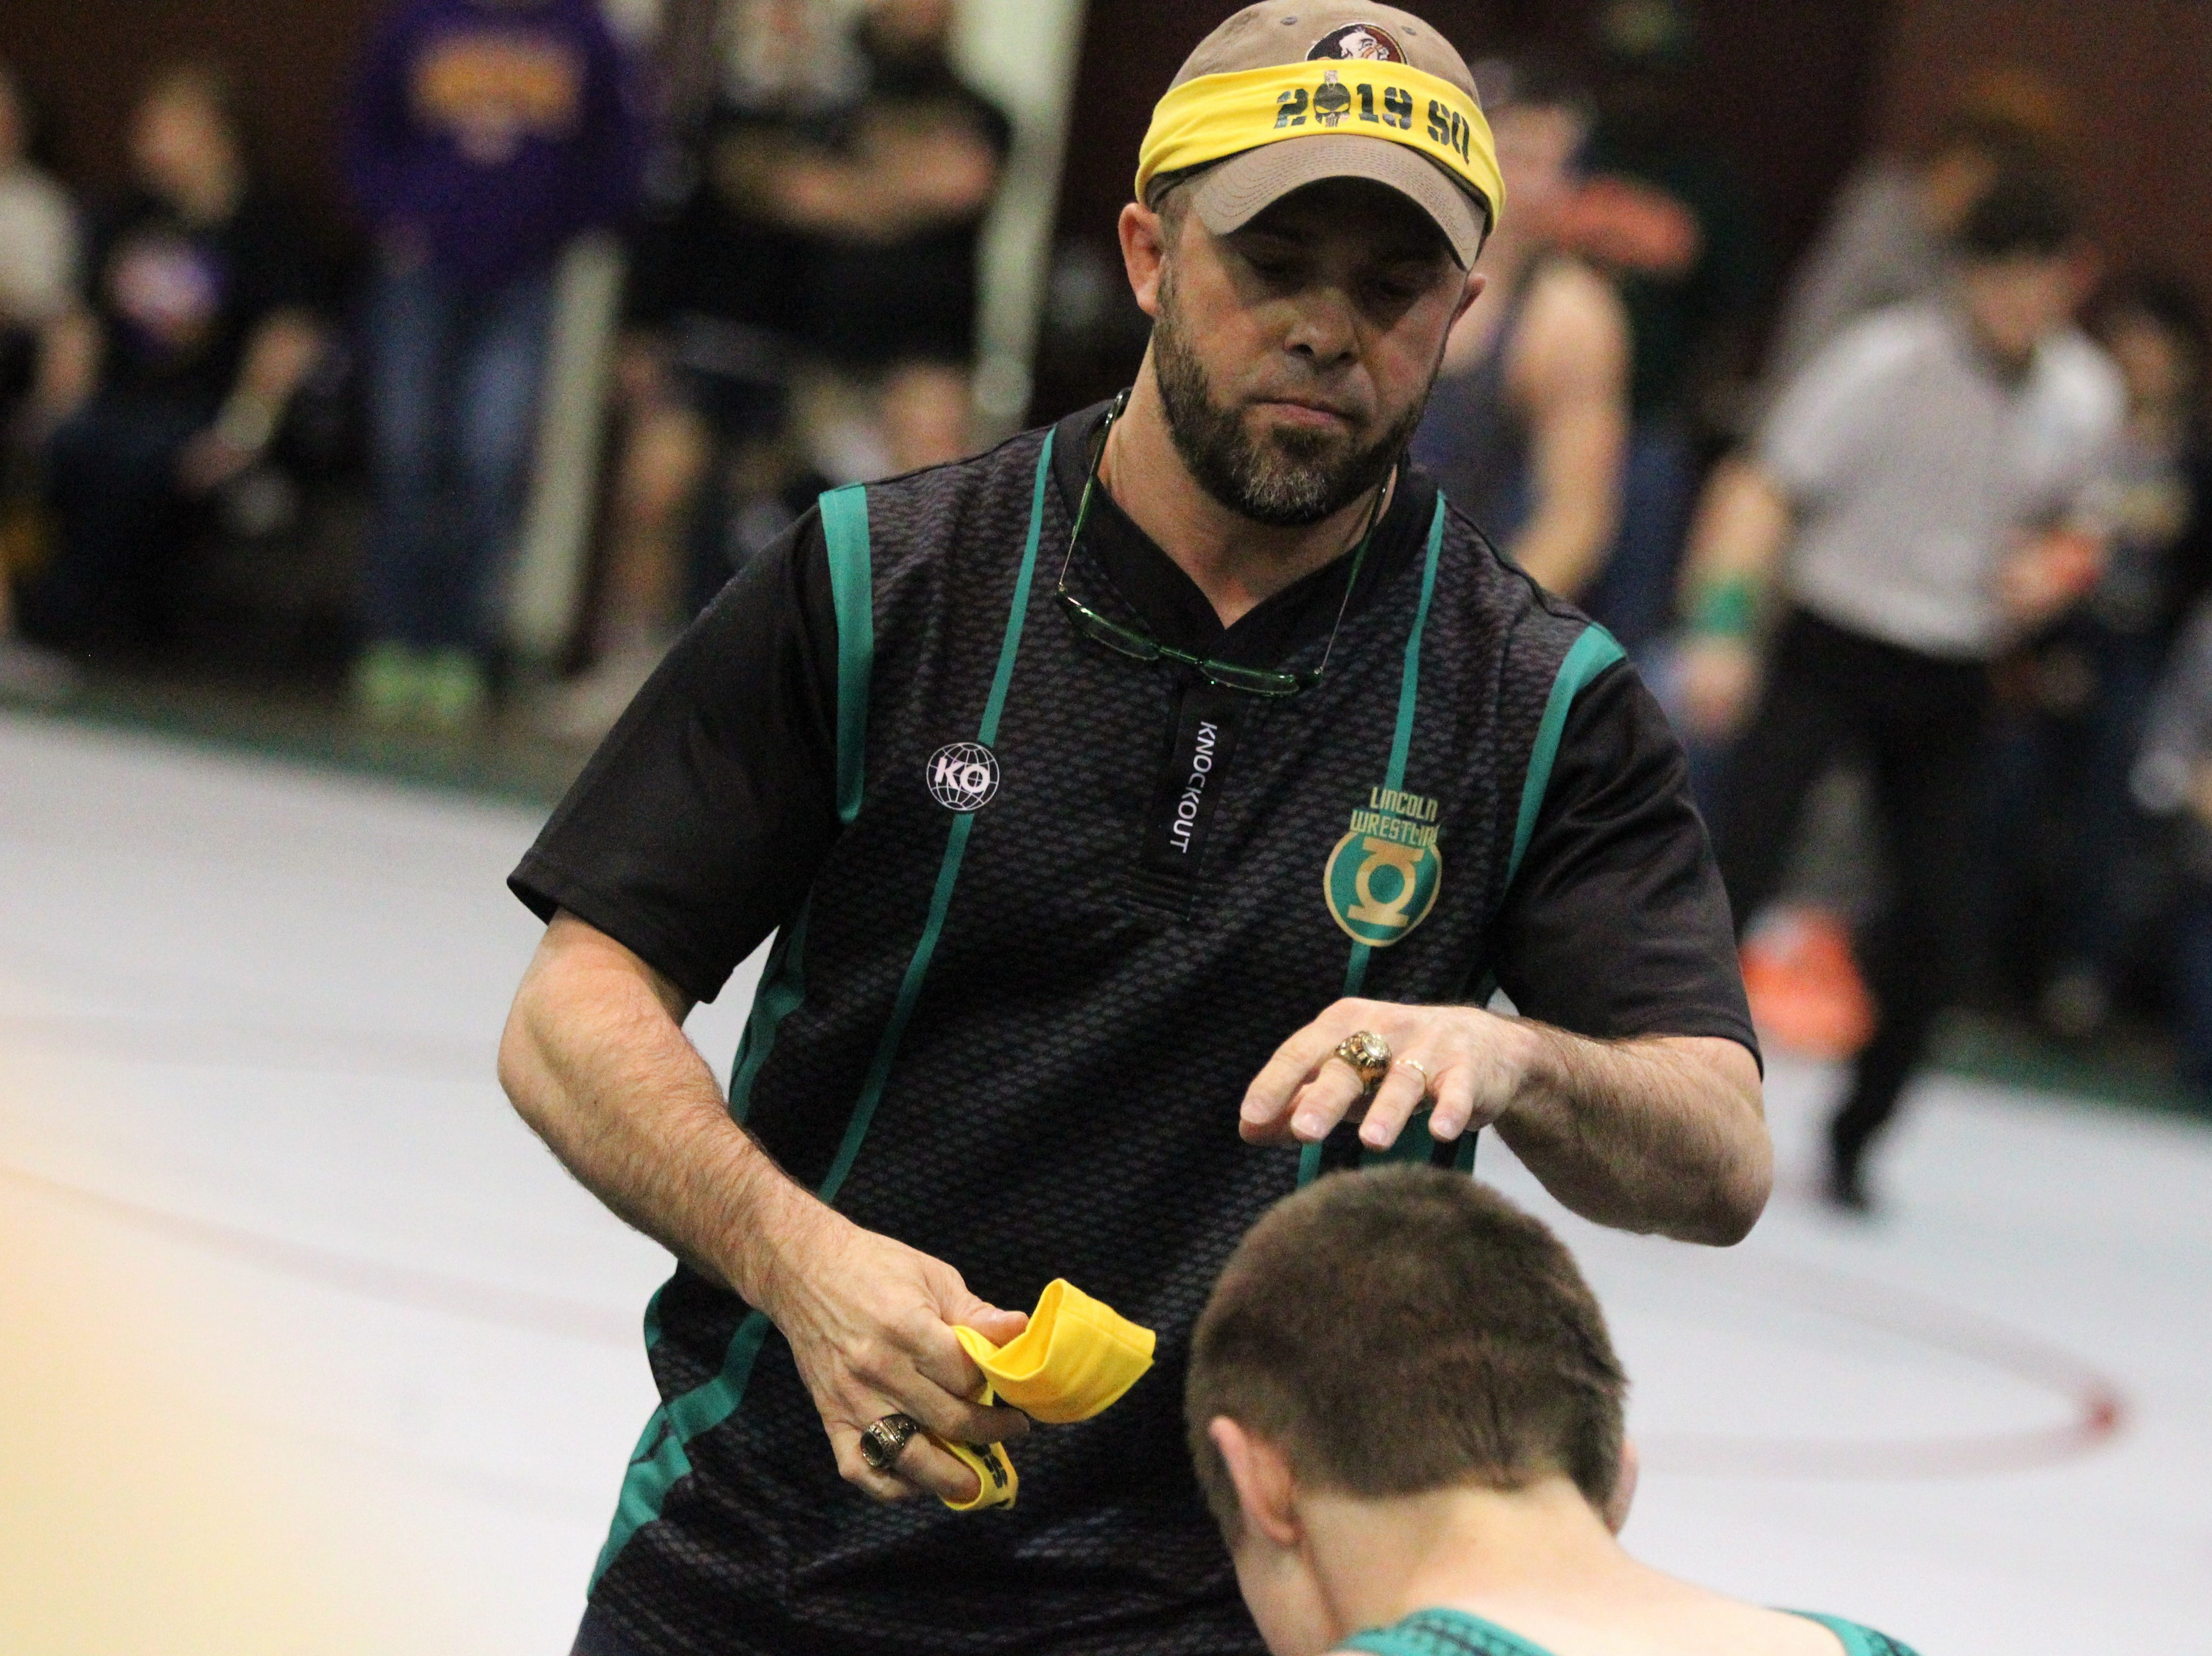 Lincoln wrestling coach Mike Crowder knights senior Mark Munroe (113 pounds) as a state qualifier during the Region 1-2A wrestling tournament at Chiles on March 2, 2019.